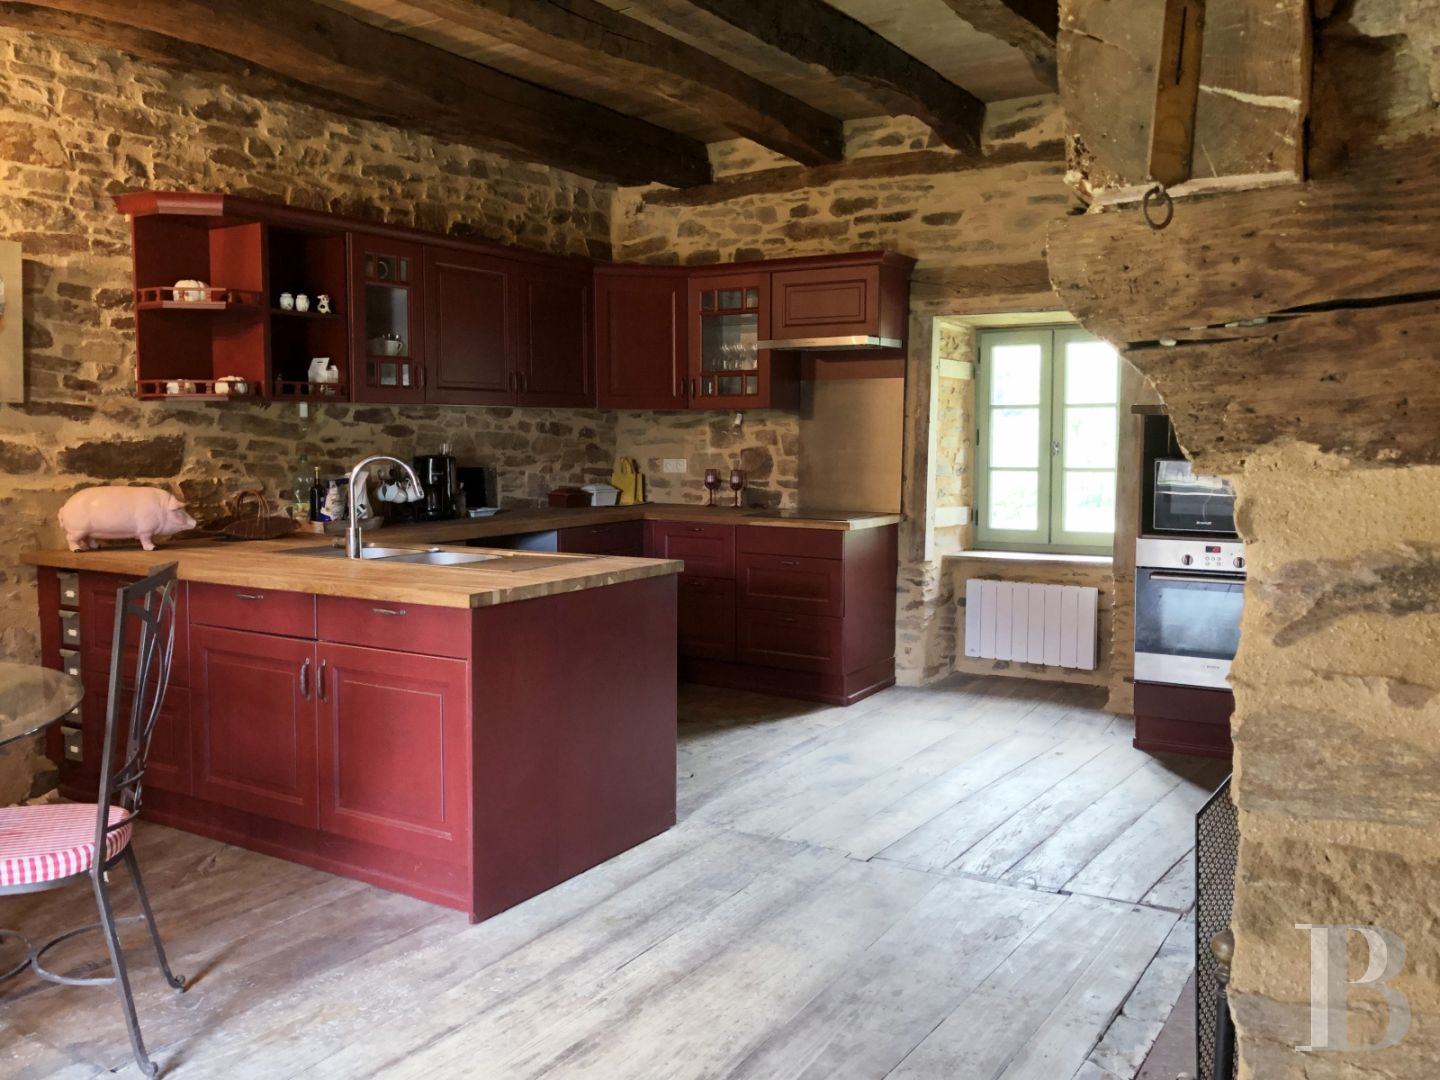 french farms for sale aquitaine character houses - 5 zoom